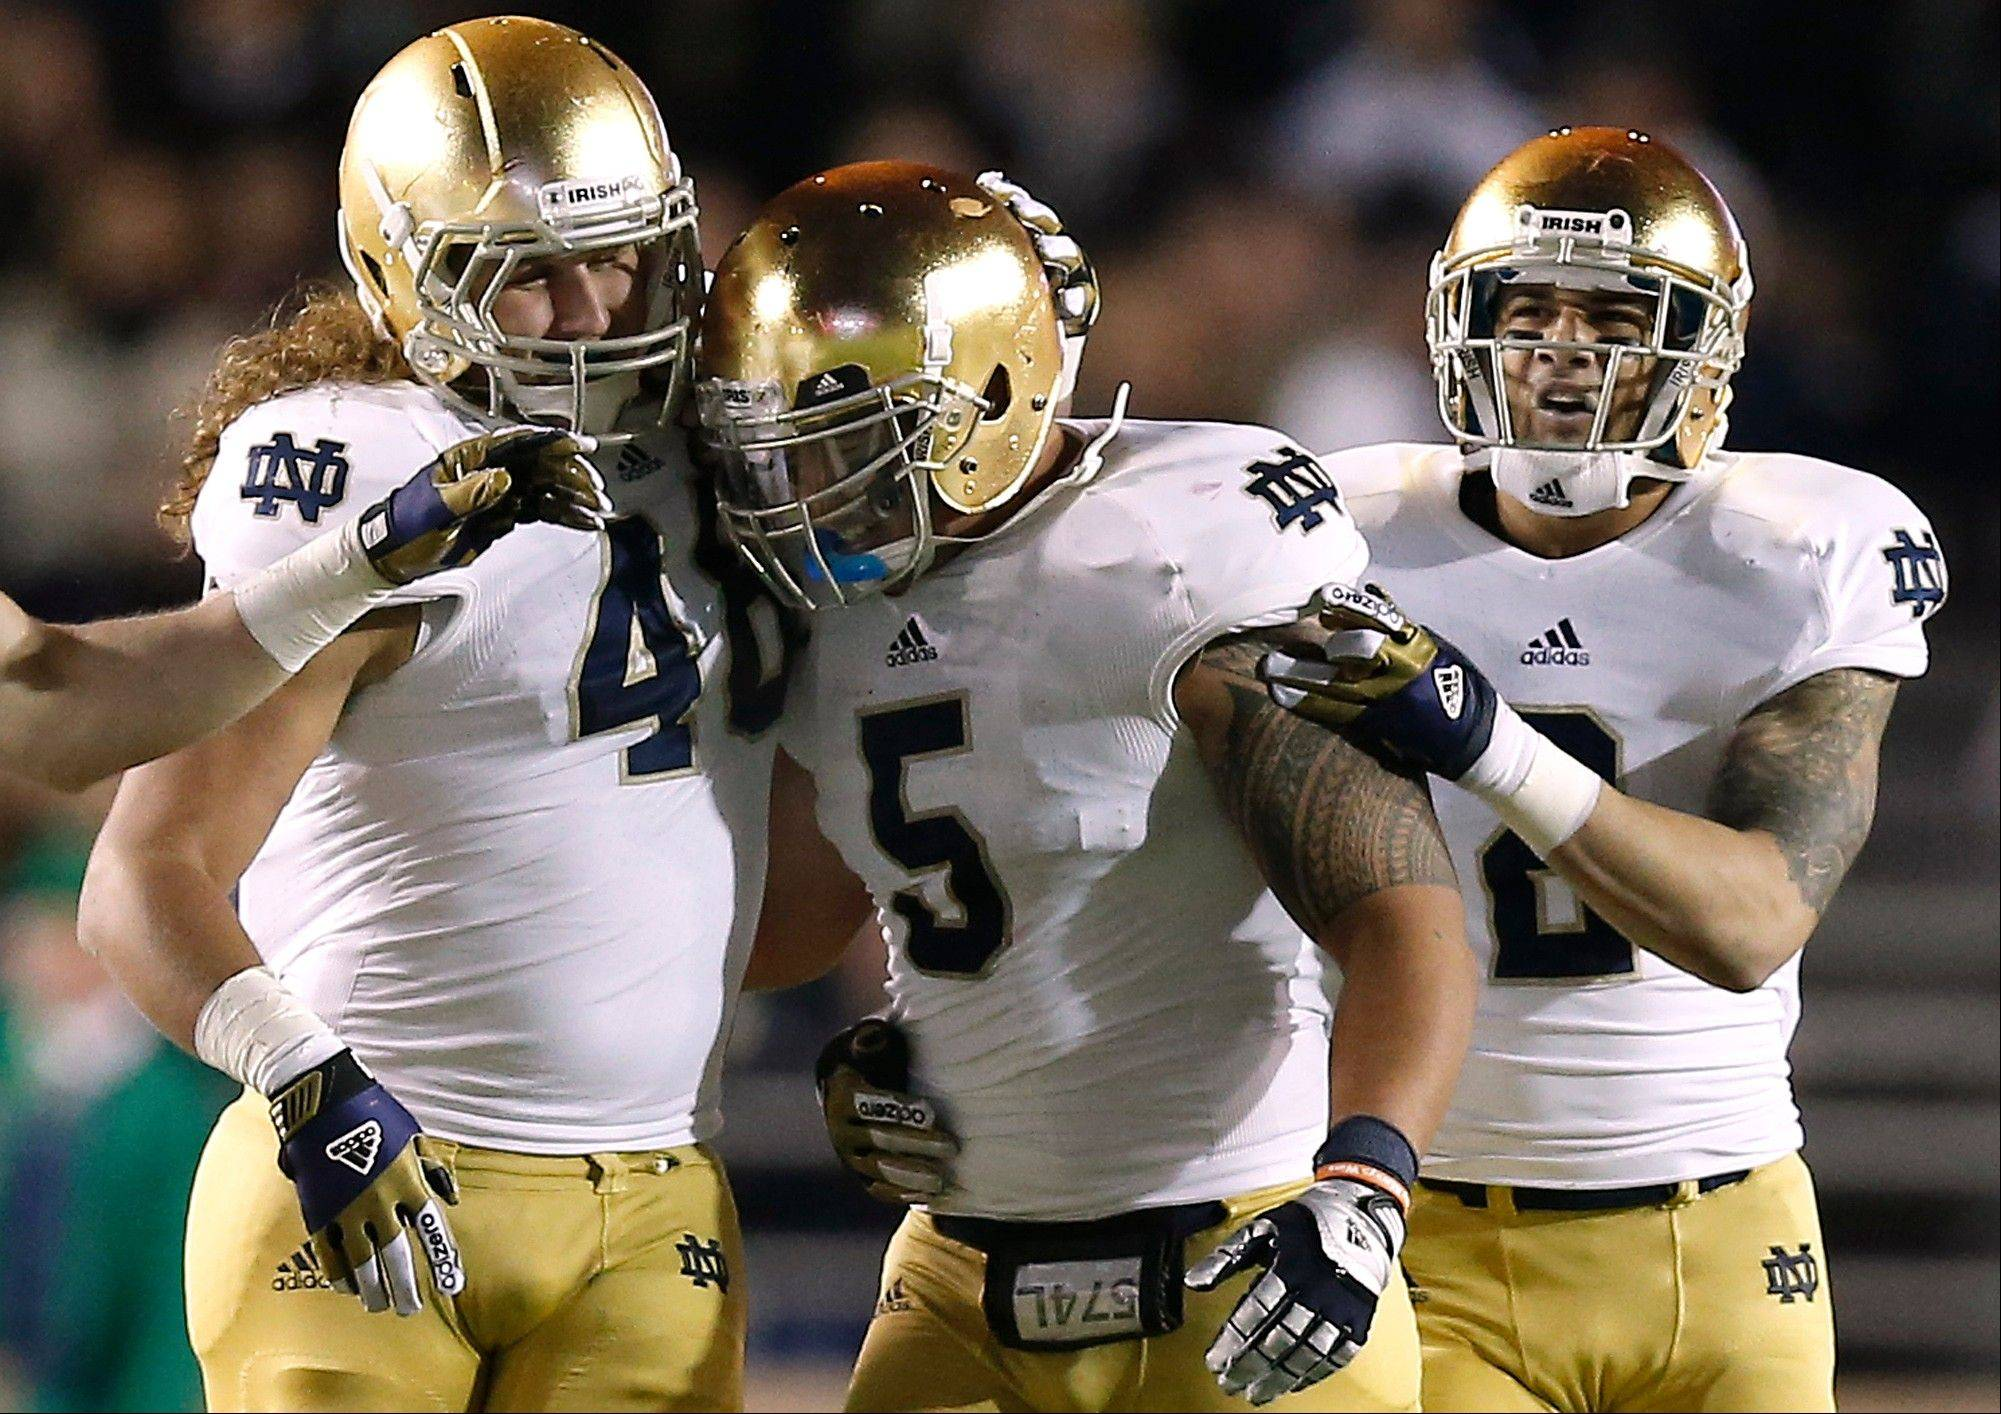 Notre Dame linebacker Manti Te�o is congratulated by teammates Dan Fox and Bennett Jackson, right, after his interception Saturday during the second half of Notre Dame�s 21-6 win over Boston College in Boston. Te�o will play at Notre Dame Stadium for the final time Saturday, giving Fighting Irish fans the chance to celebrate one of the best linebackers in the history of the storied program and thank him for leading the team to one of its best seasons in decades.